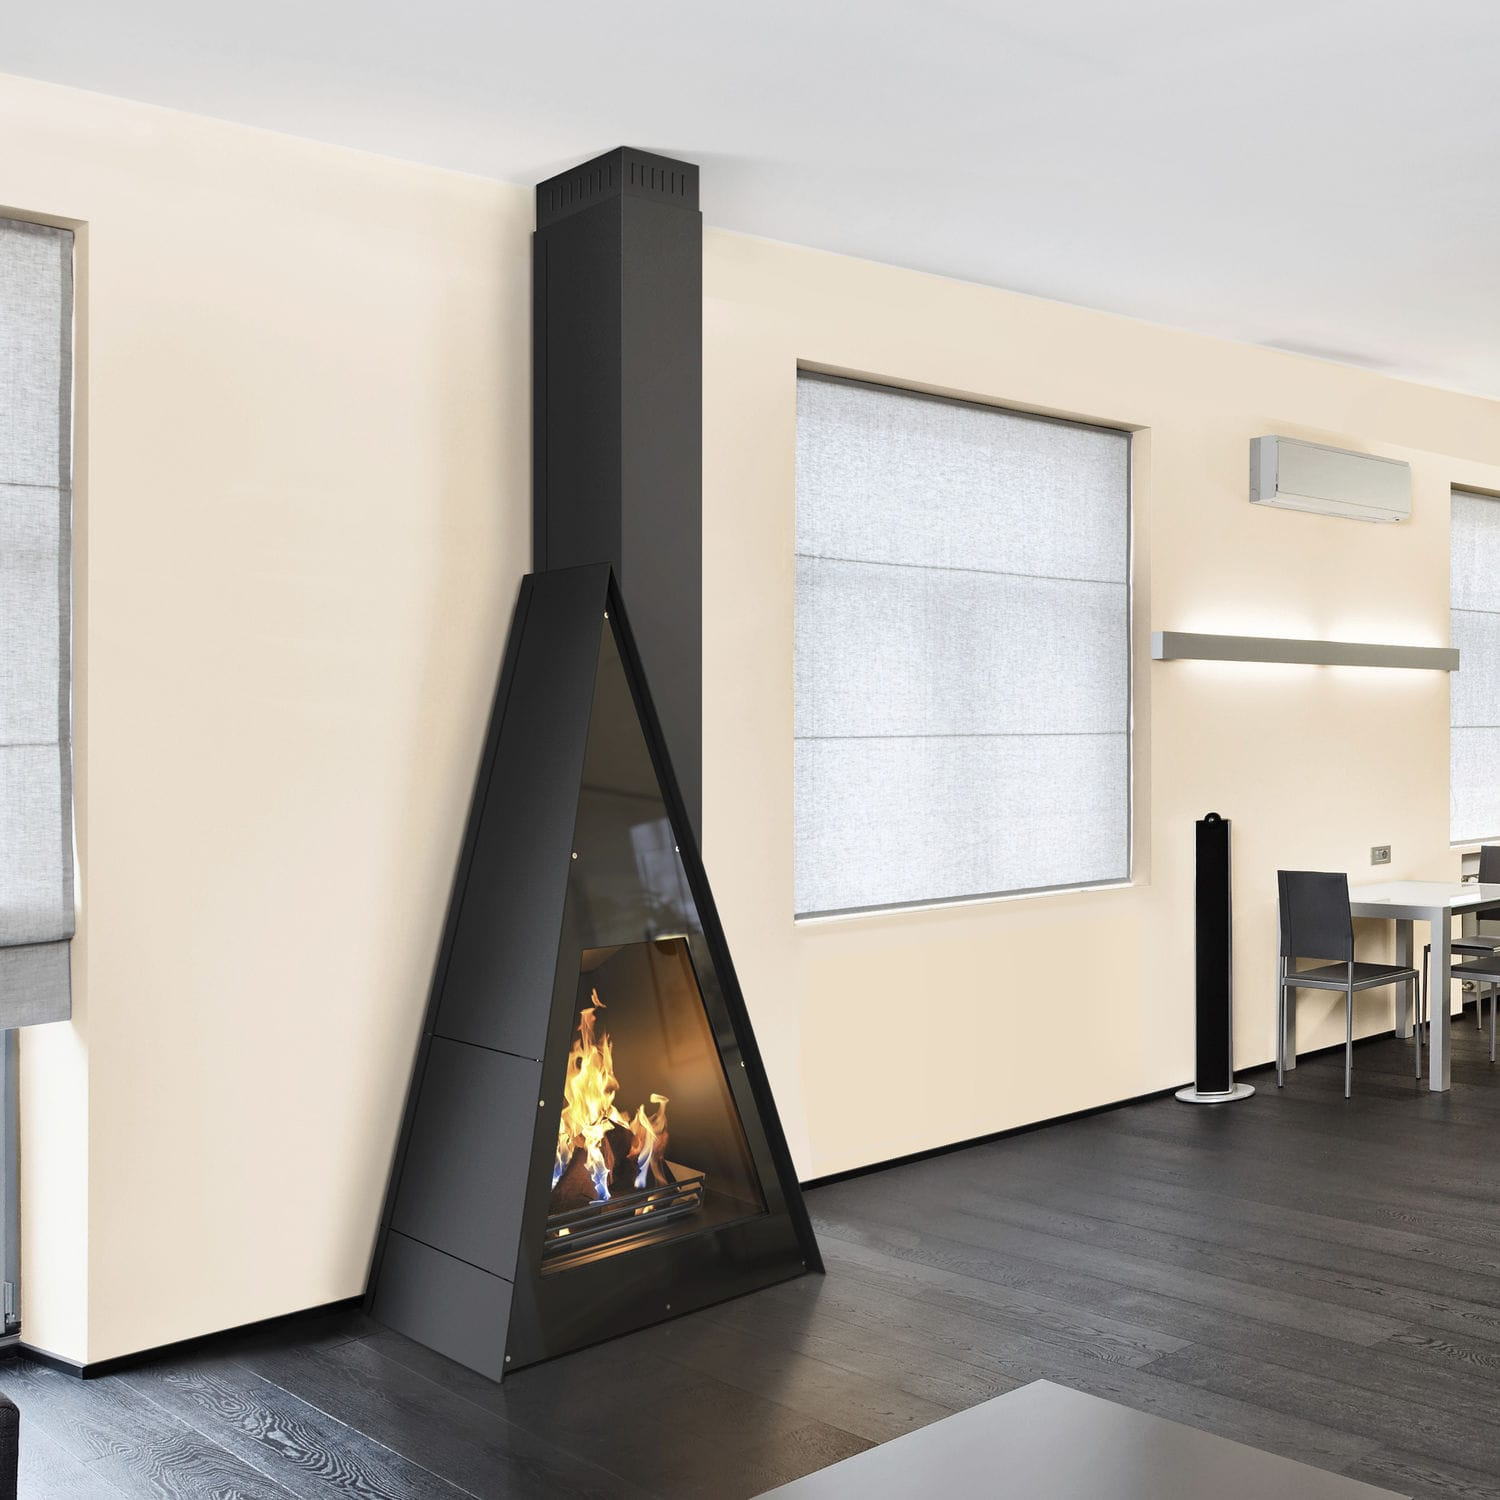 a and popular home to pixel uncategorized add how for dbdcdbccee amazing imgid style fireplace